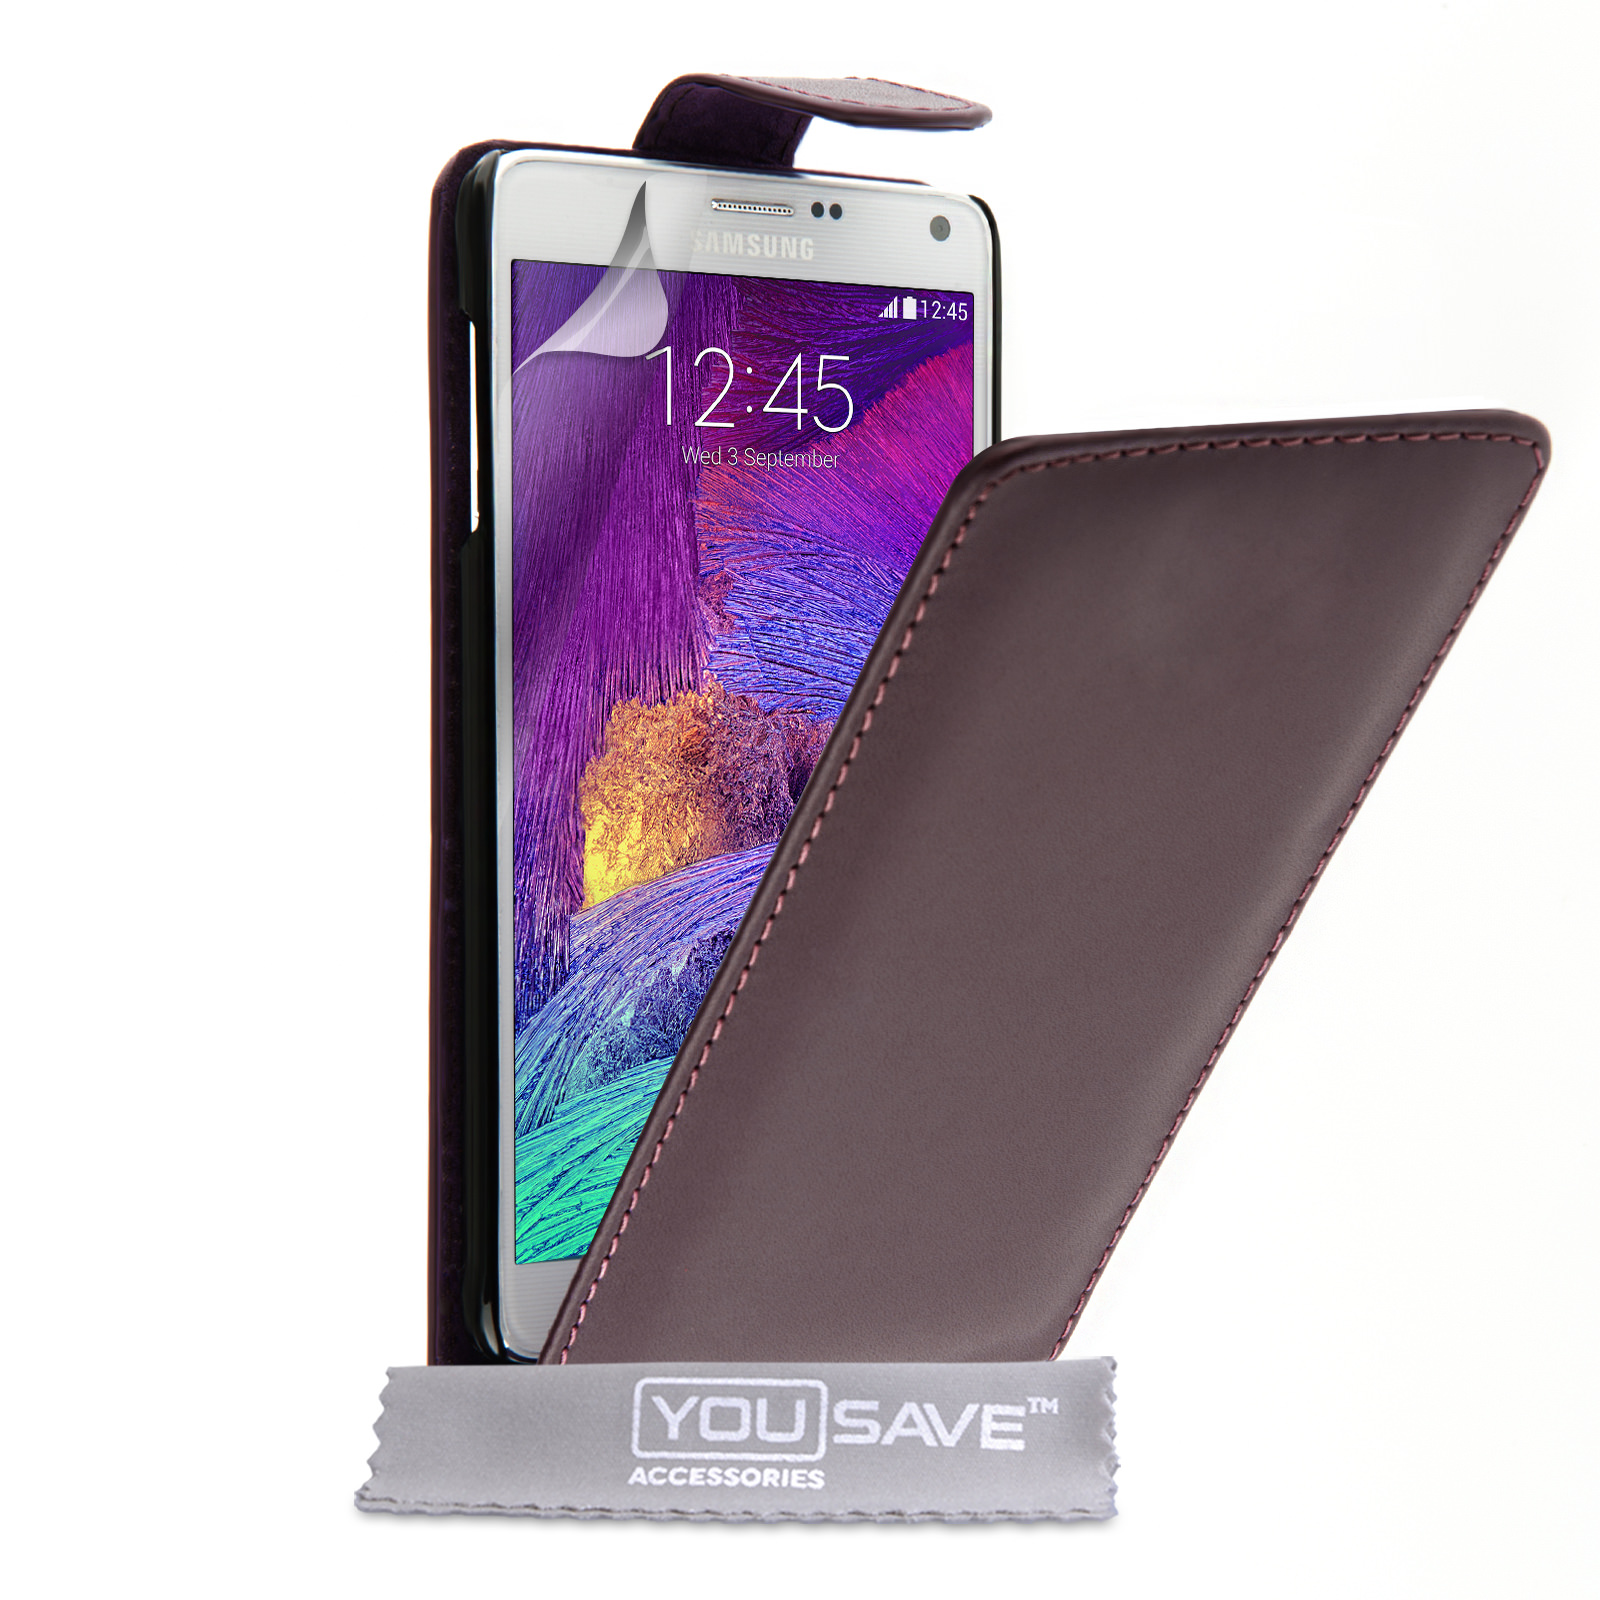 YouSave Samsung Galaxy Note 4 Leather-Effect Flip Case - Purple